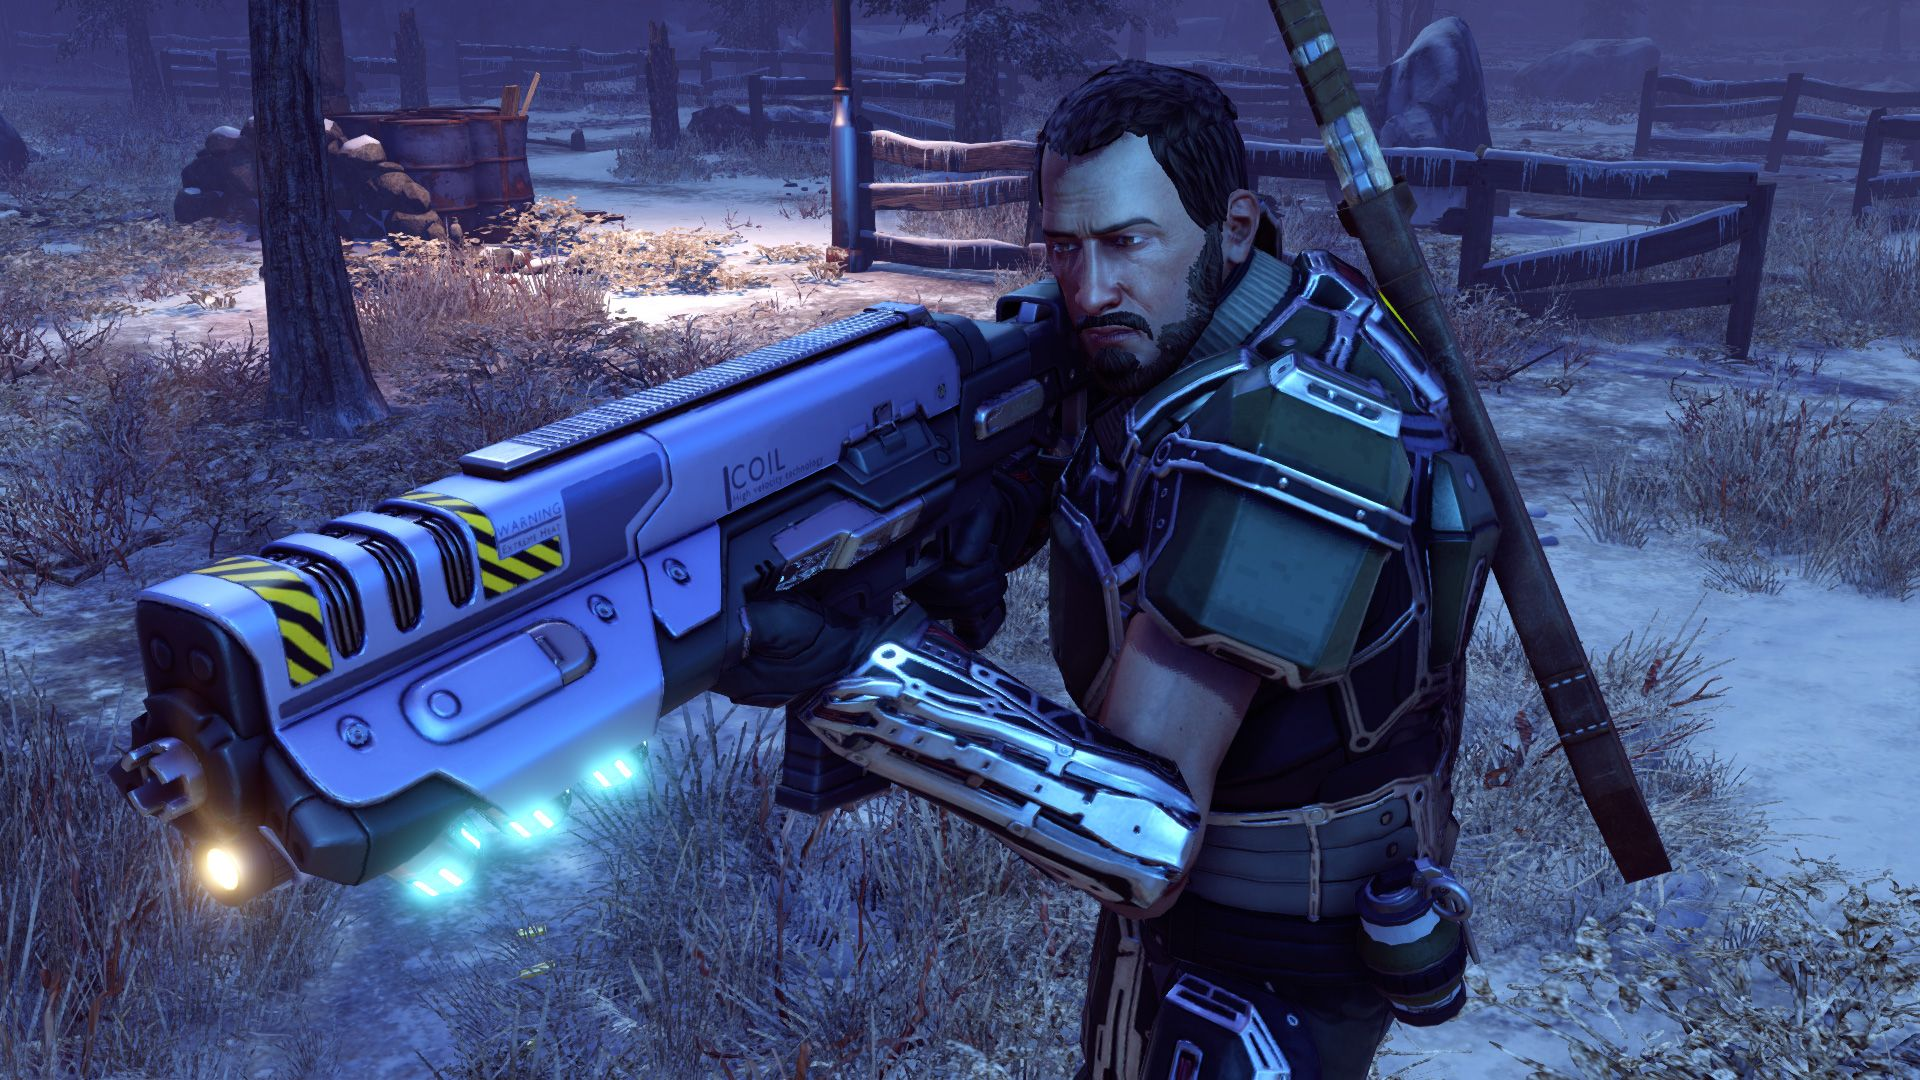 FR - XCOM 2: Equip Your Soldiers with the Long War 2 Mod's New Weapon, the Coilgu